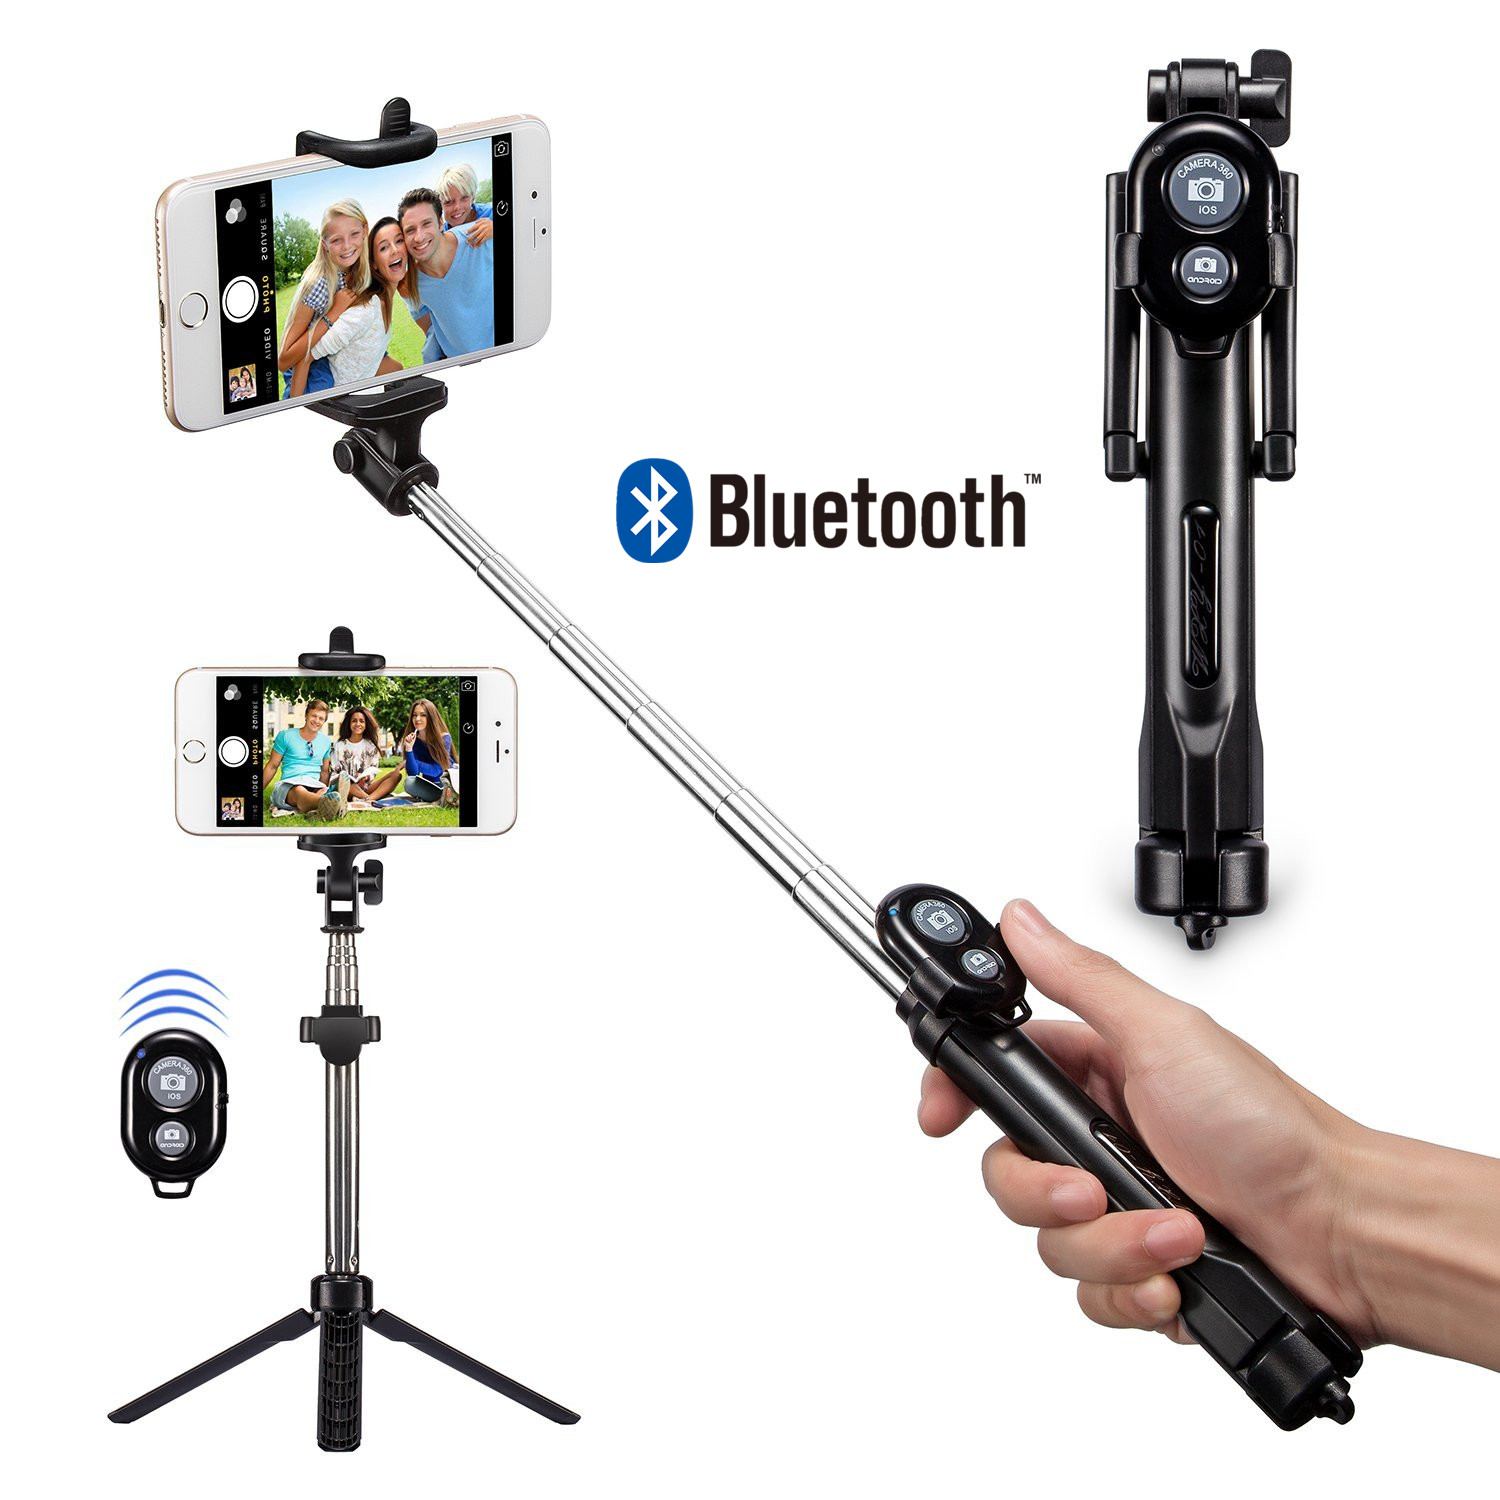 FGHGF T1 Pliable Bluetooth Obturation Selfie Bâton + Trépied Manfrotto Bâtons Télécommande Support à bluetooth bouton